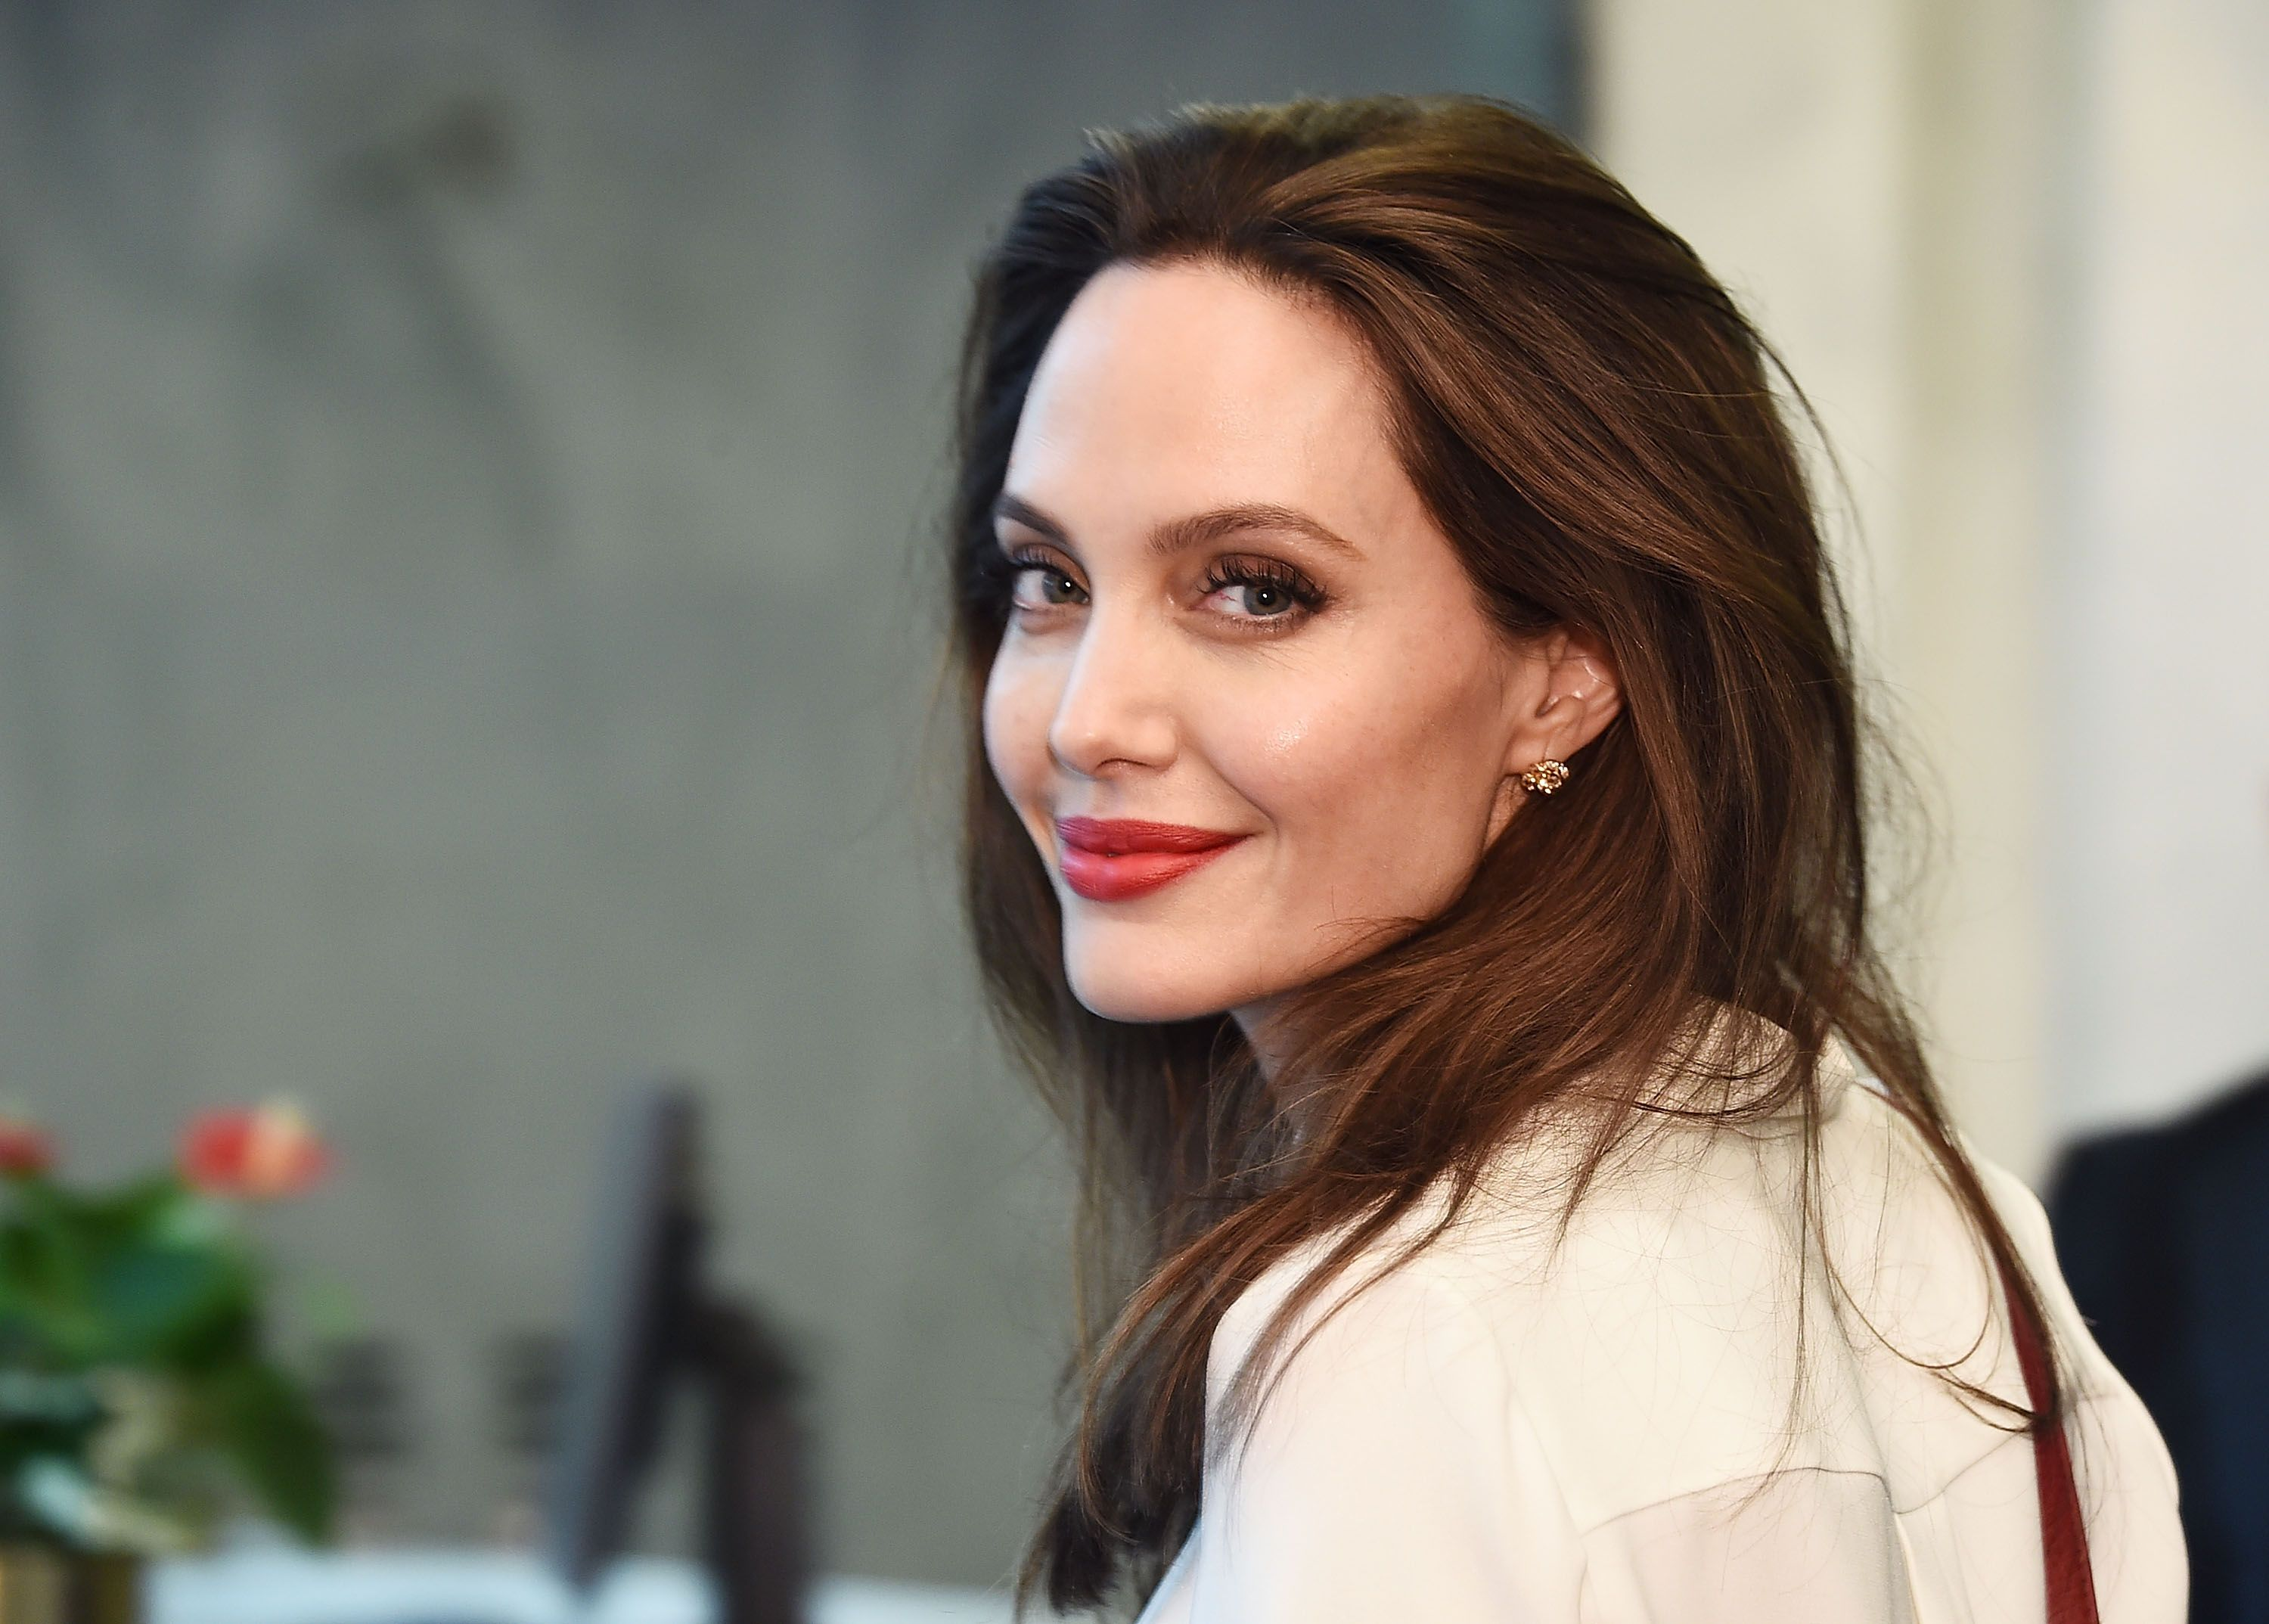 Angelina Jolie Opened Up About How Her Split From Brad Pitt Profoundly Changed Her